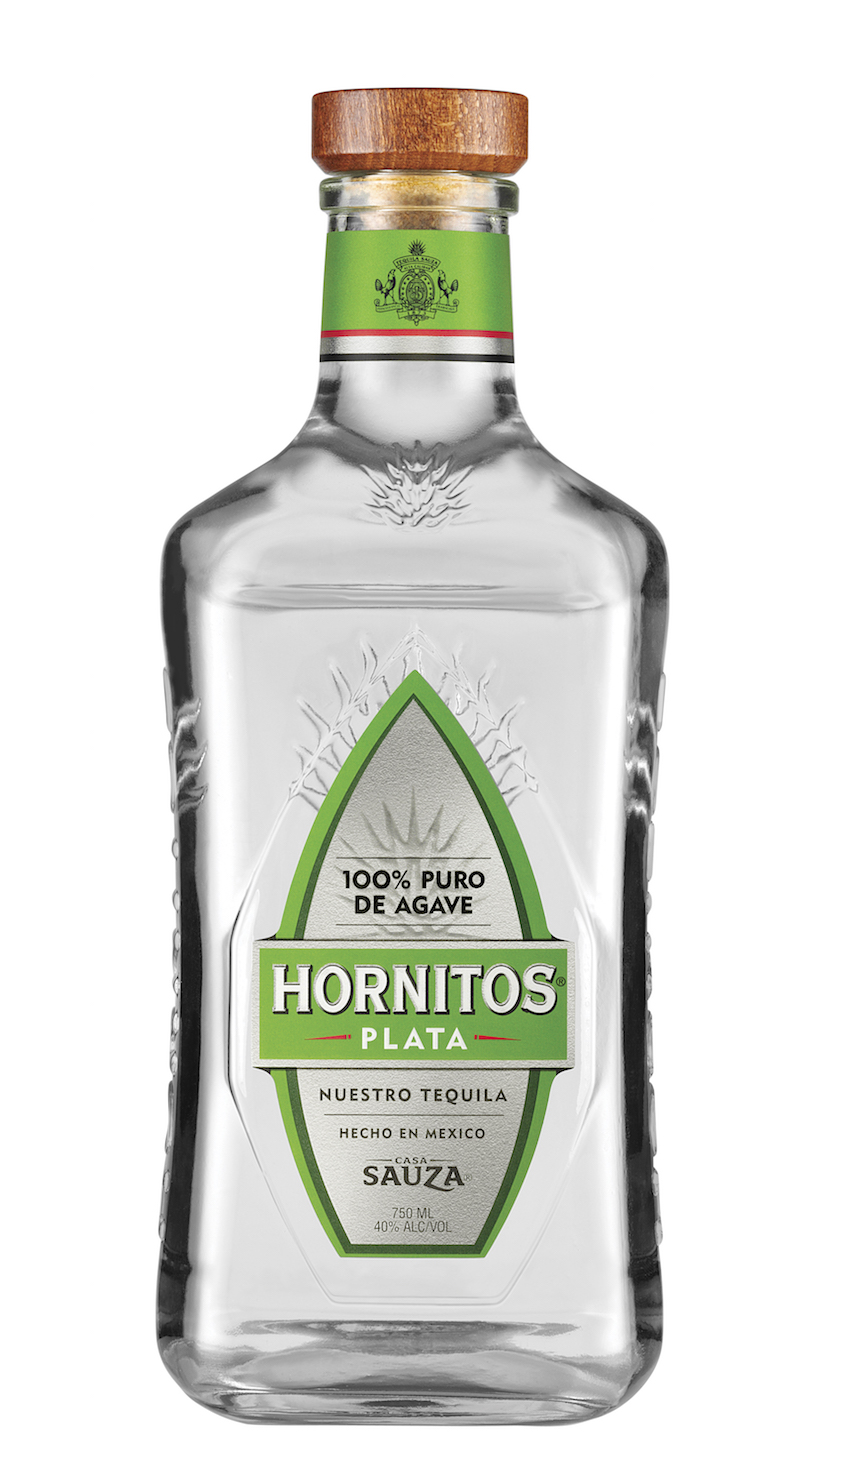 Hornitos Plata Bottle Image